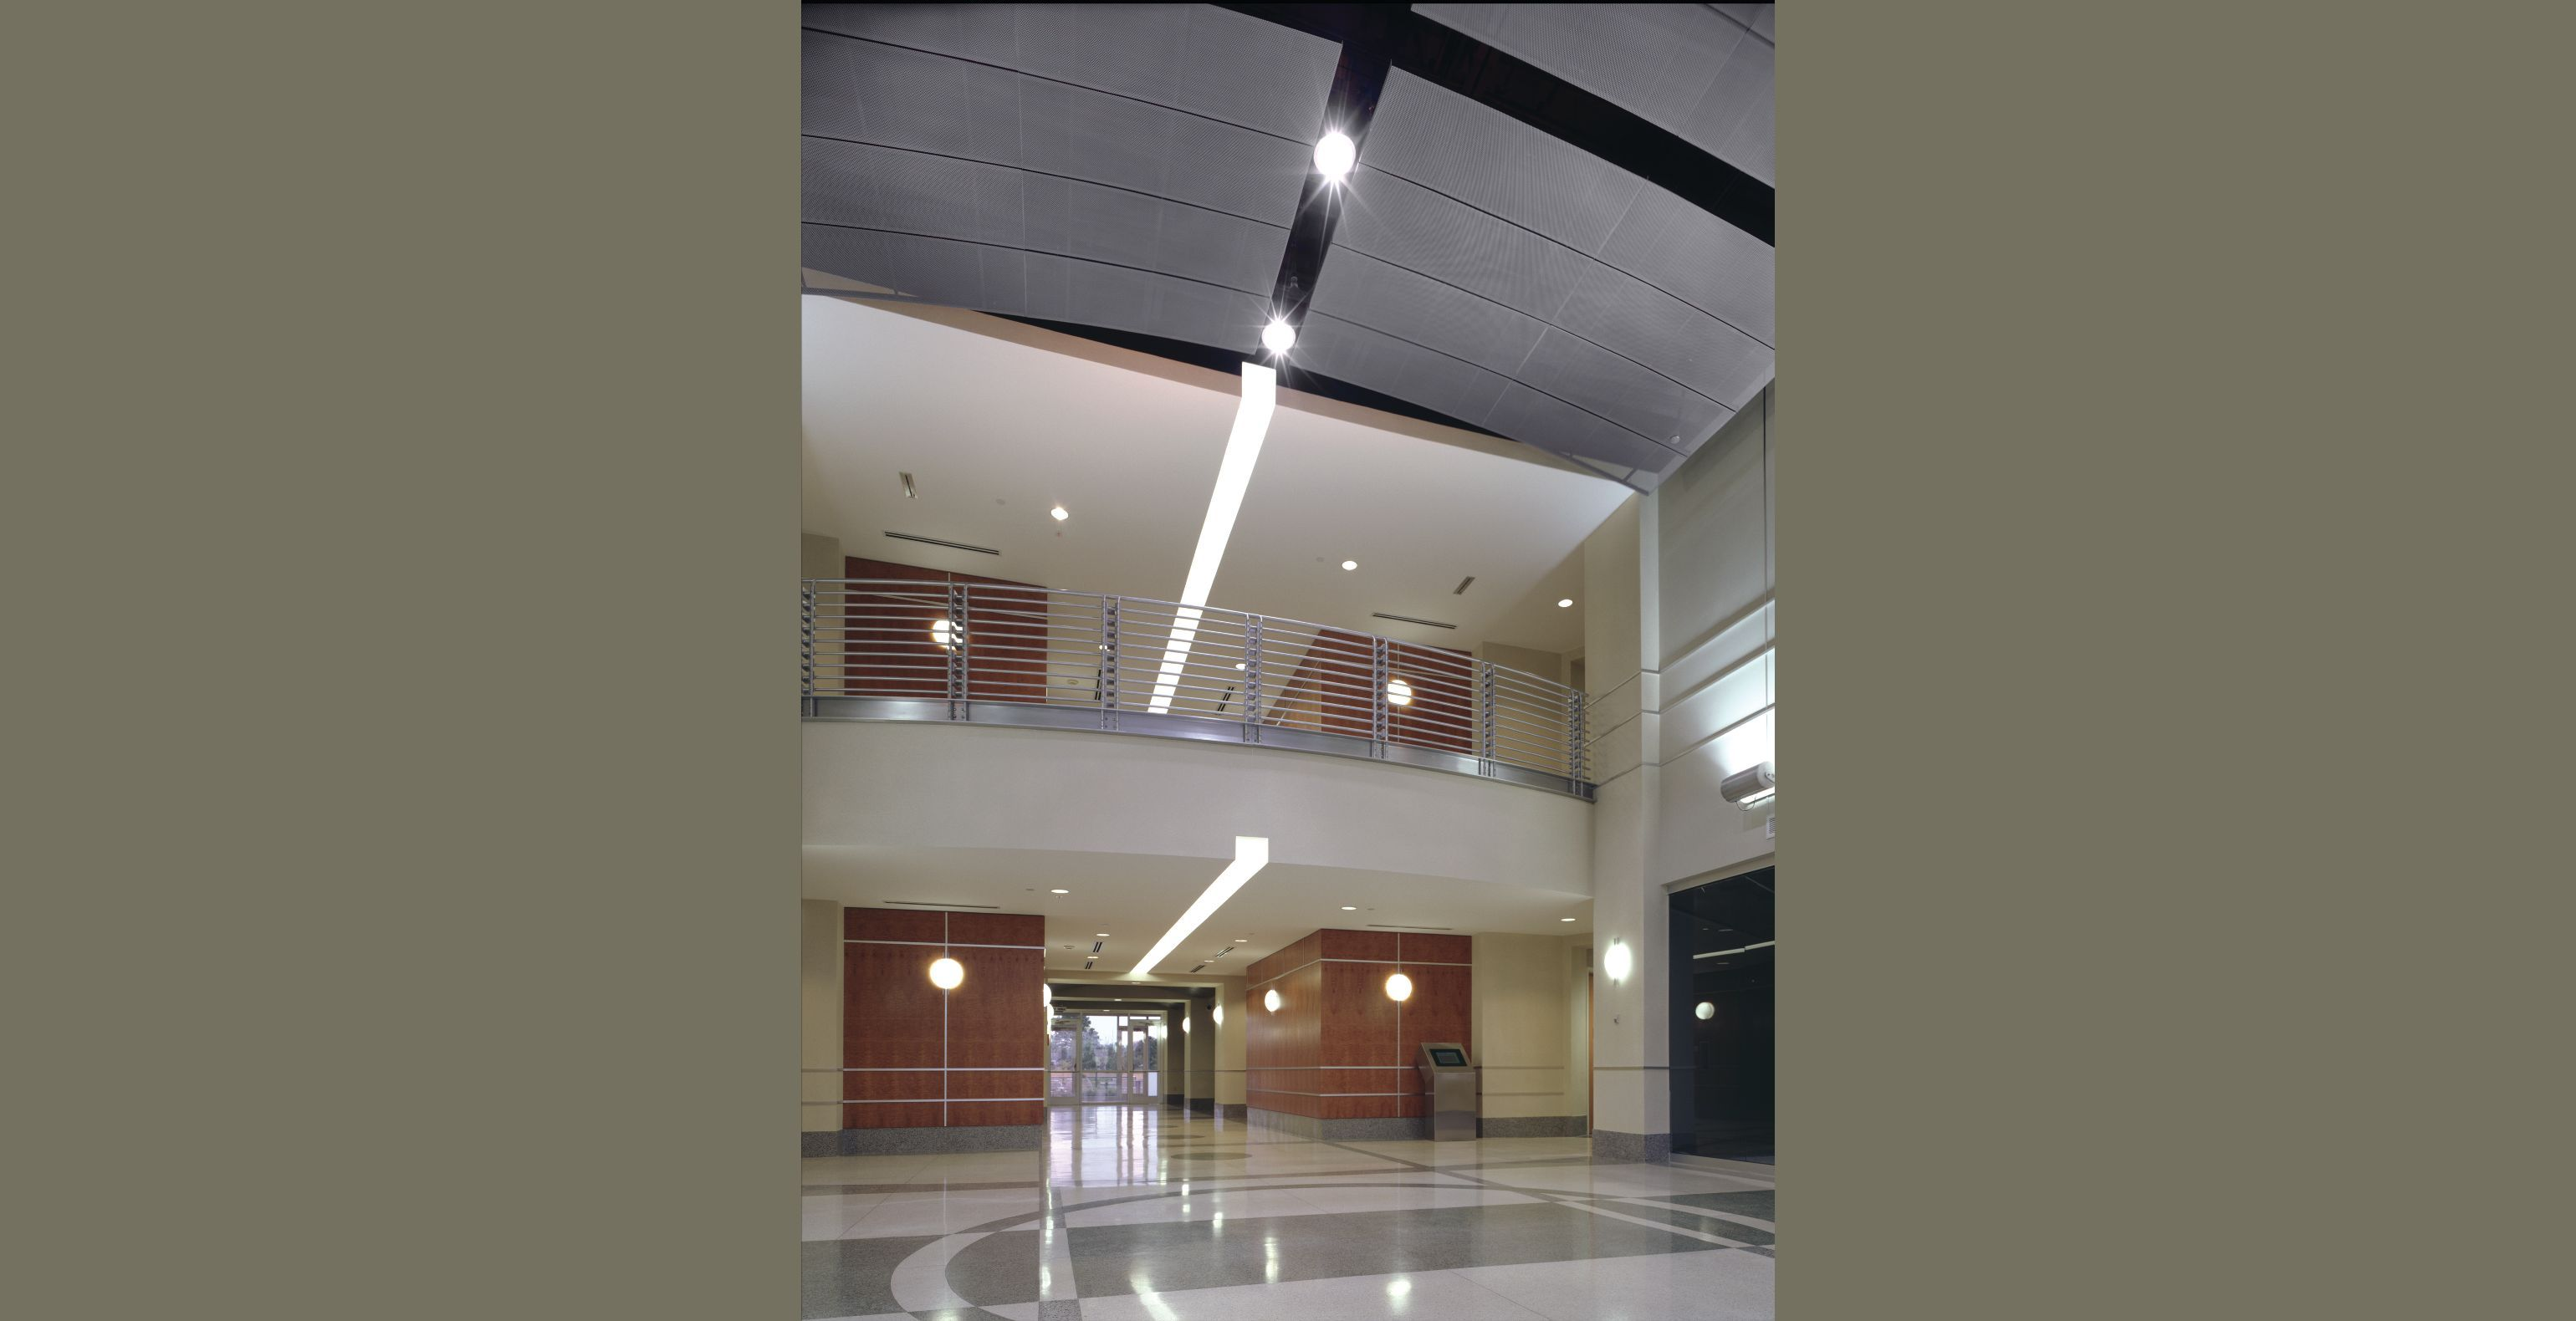 Commercial Ceiling and Wall Systems Idea u0026 Photo Gallery - Armstrong - Lighting integrated within perforated & Commercial Ceiling and Wall Systems Idea u0026 Photo Gallery ... azcodes.com